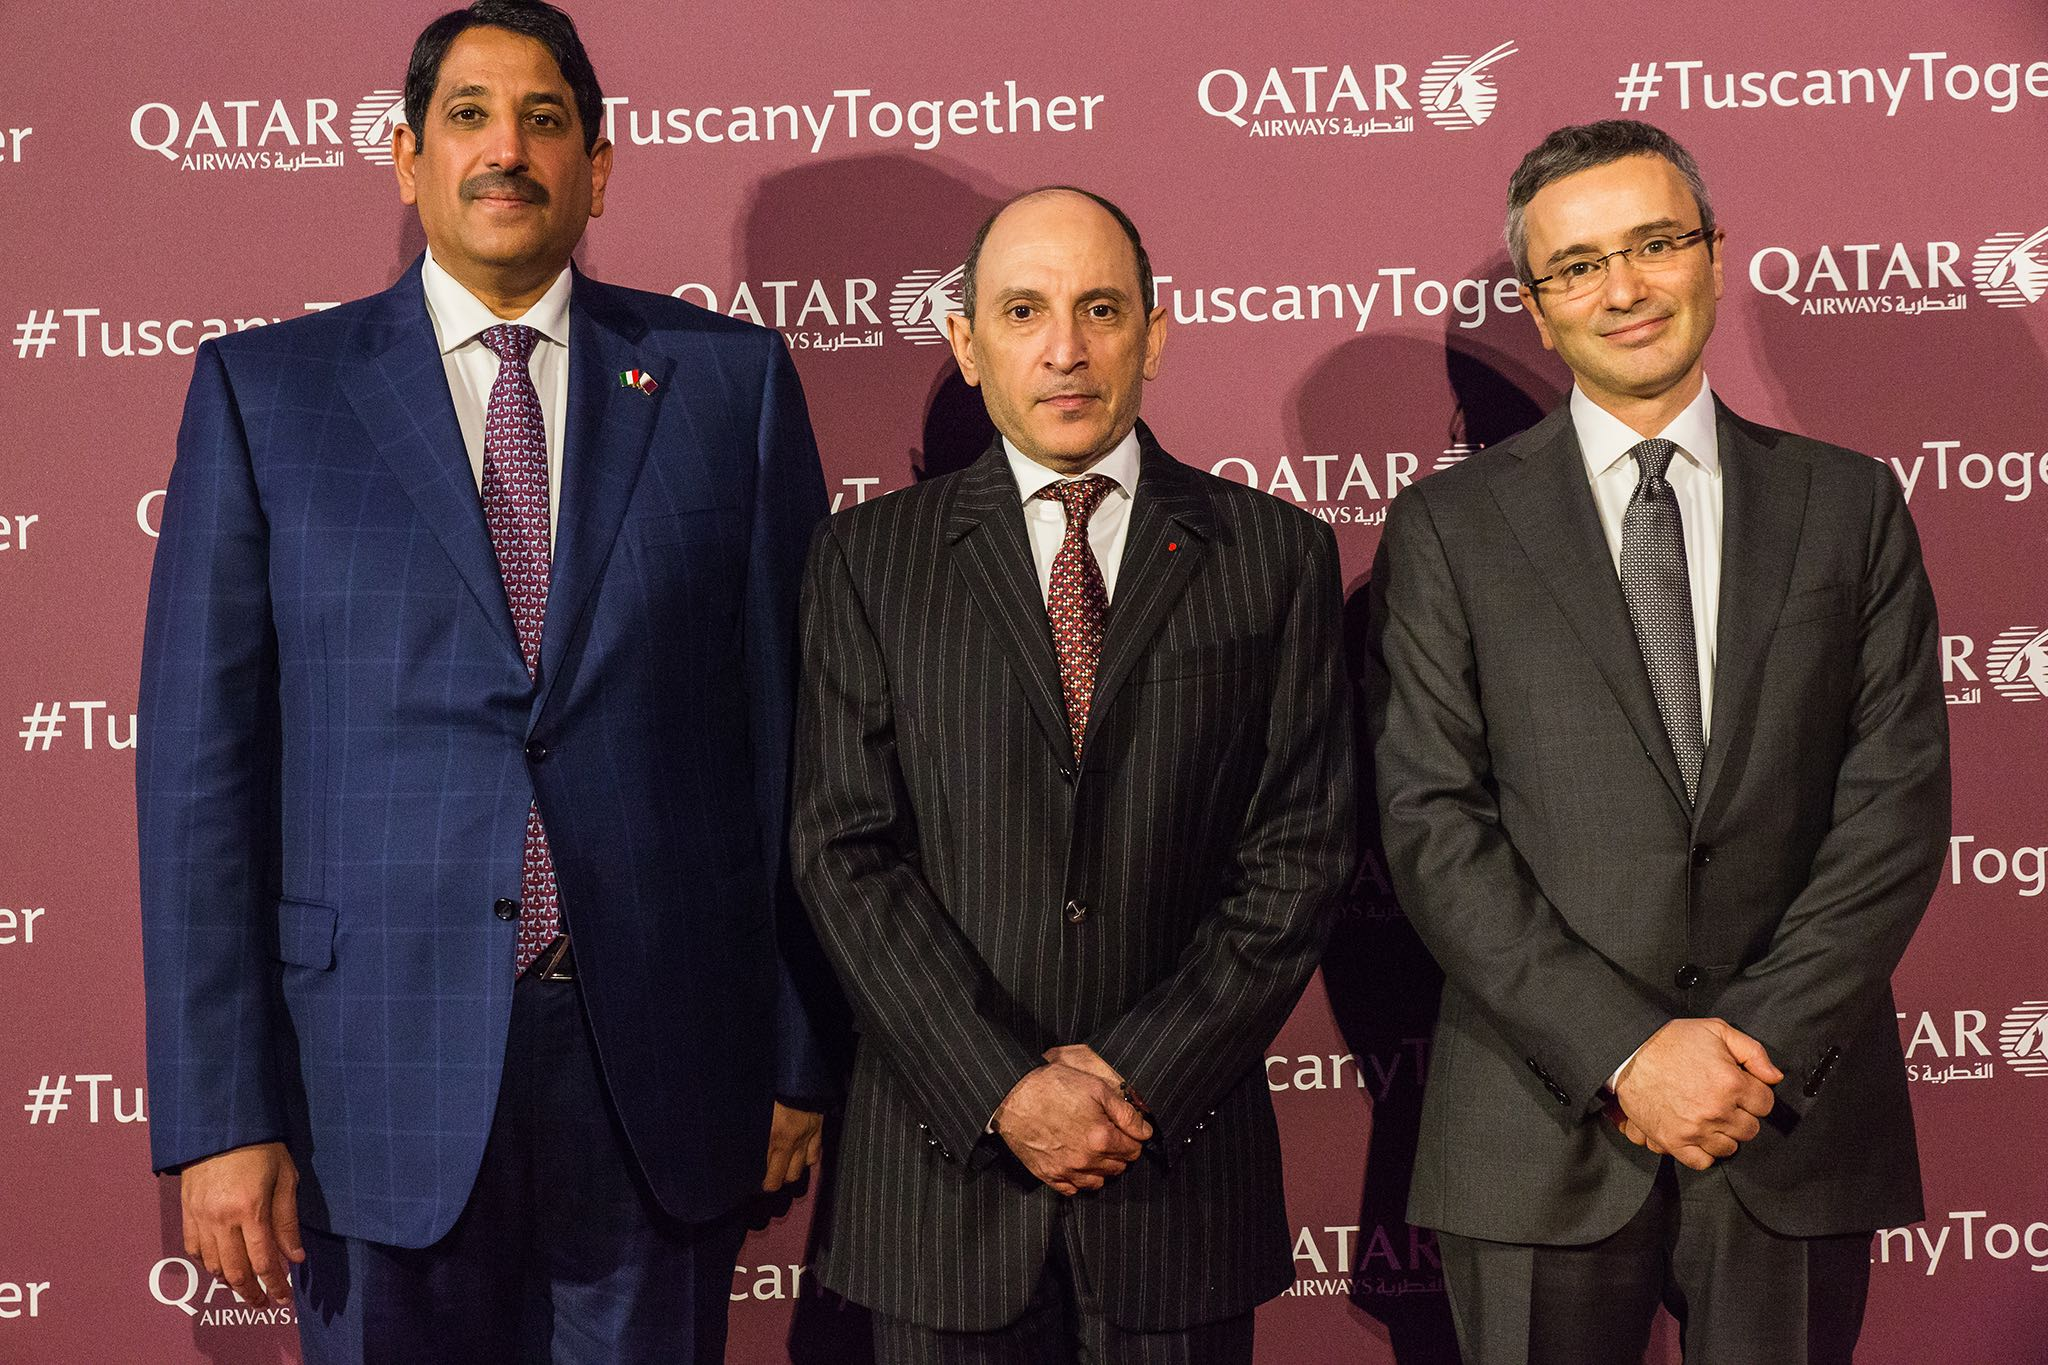 Qatar Airways Group chief executive, Akbar Al Baker (c), with Abdul Aziz Bin Ahmed Al Malki (l), Qatar's Ambassador to Italy, and Marco Rigotti (r), chairman of Meridiana Fly.